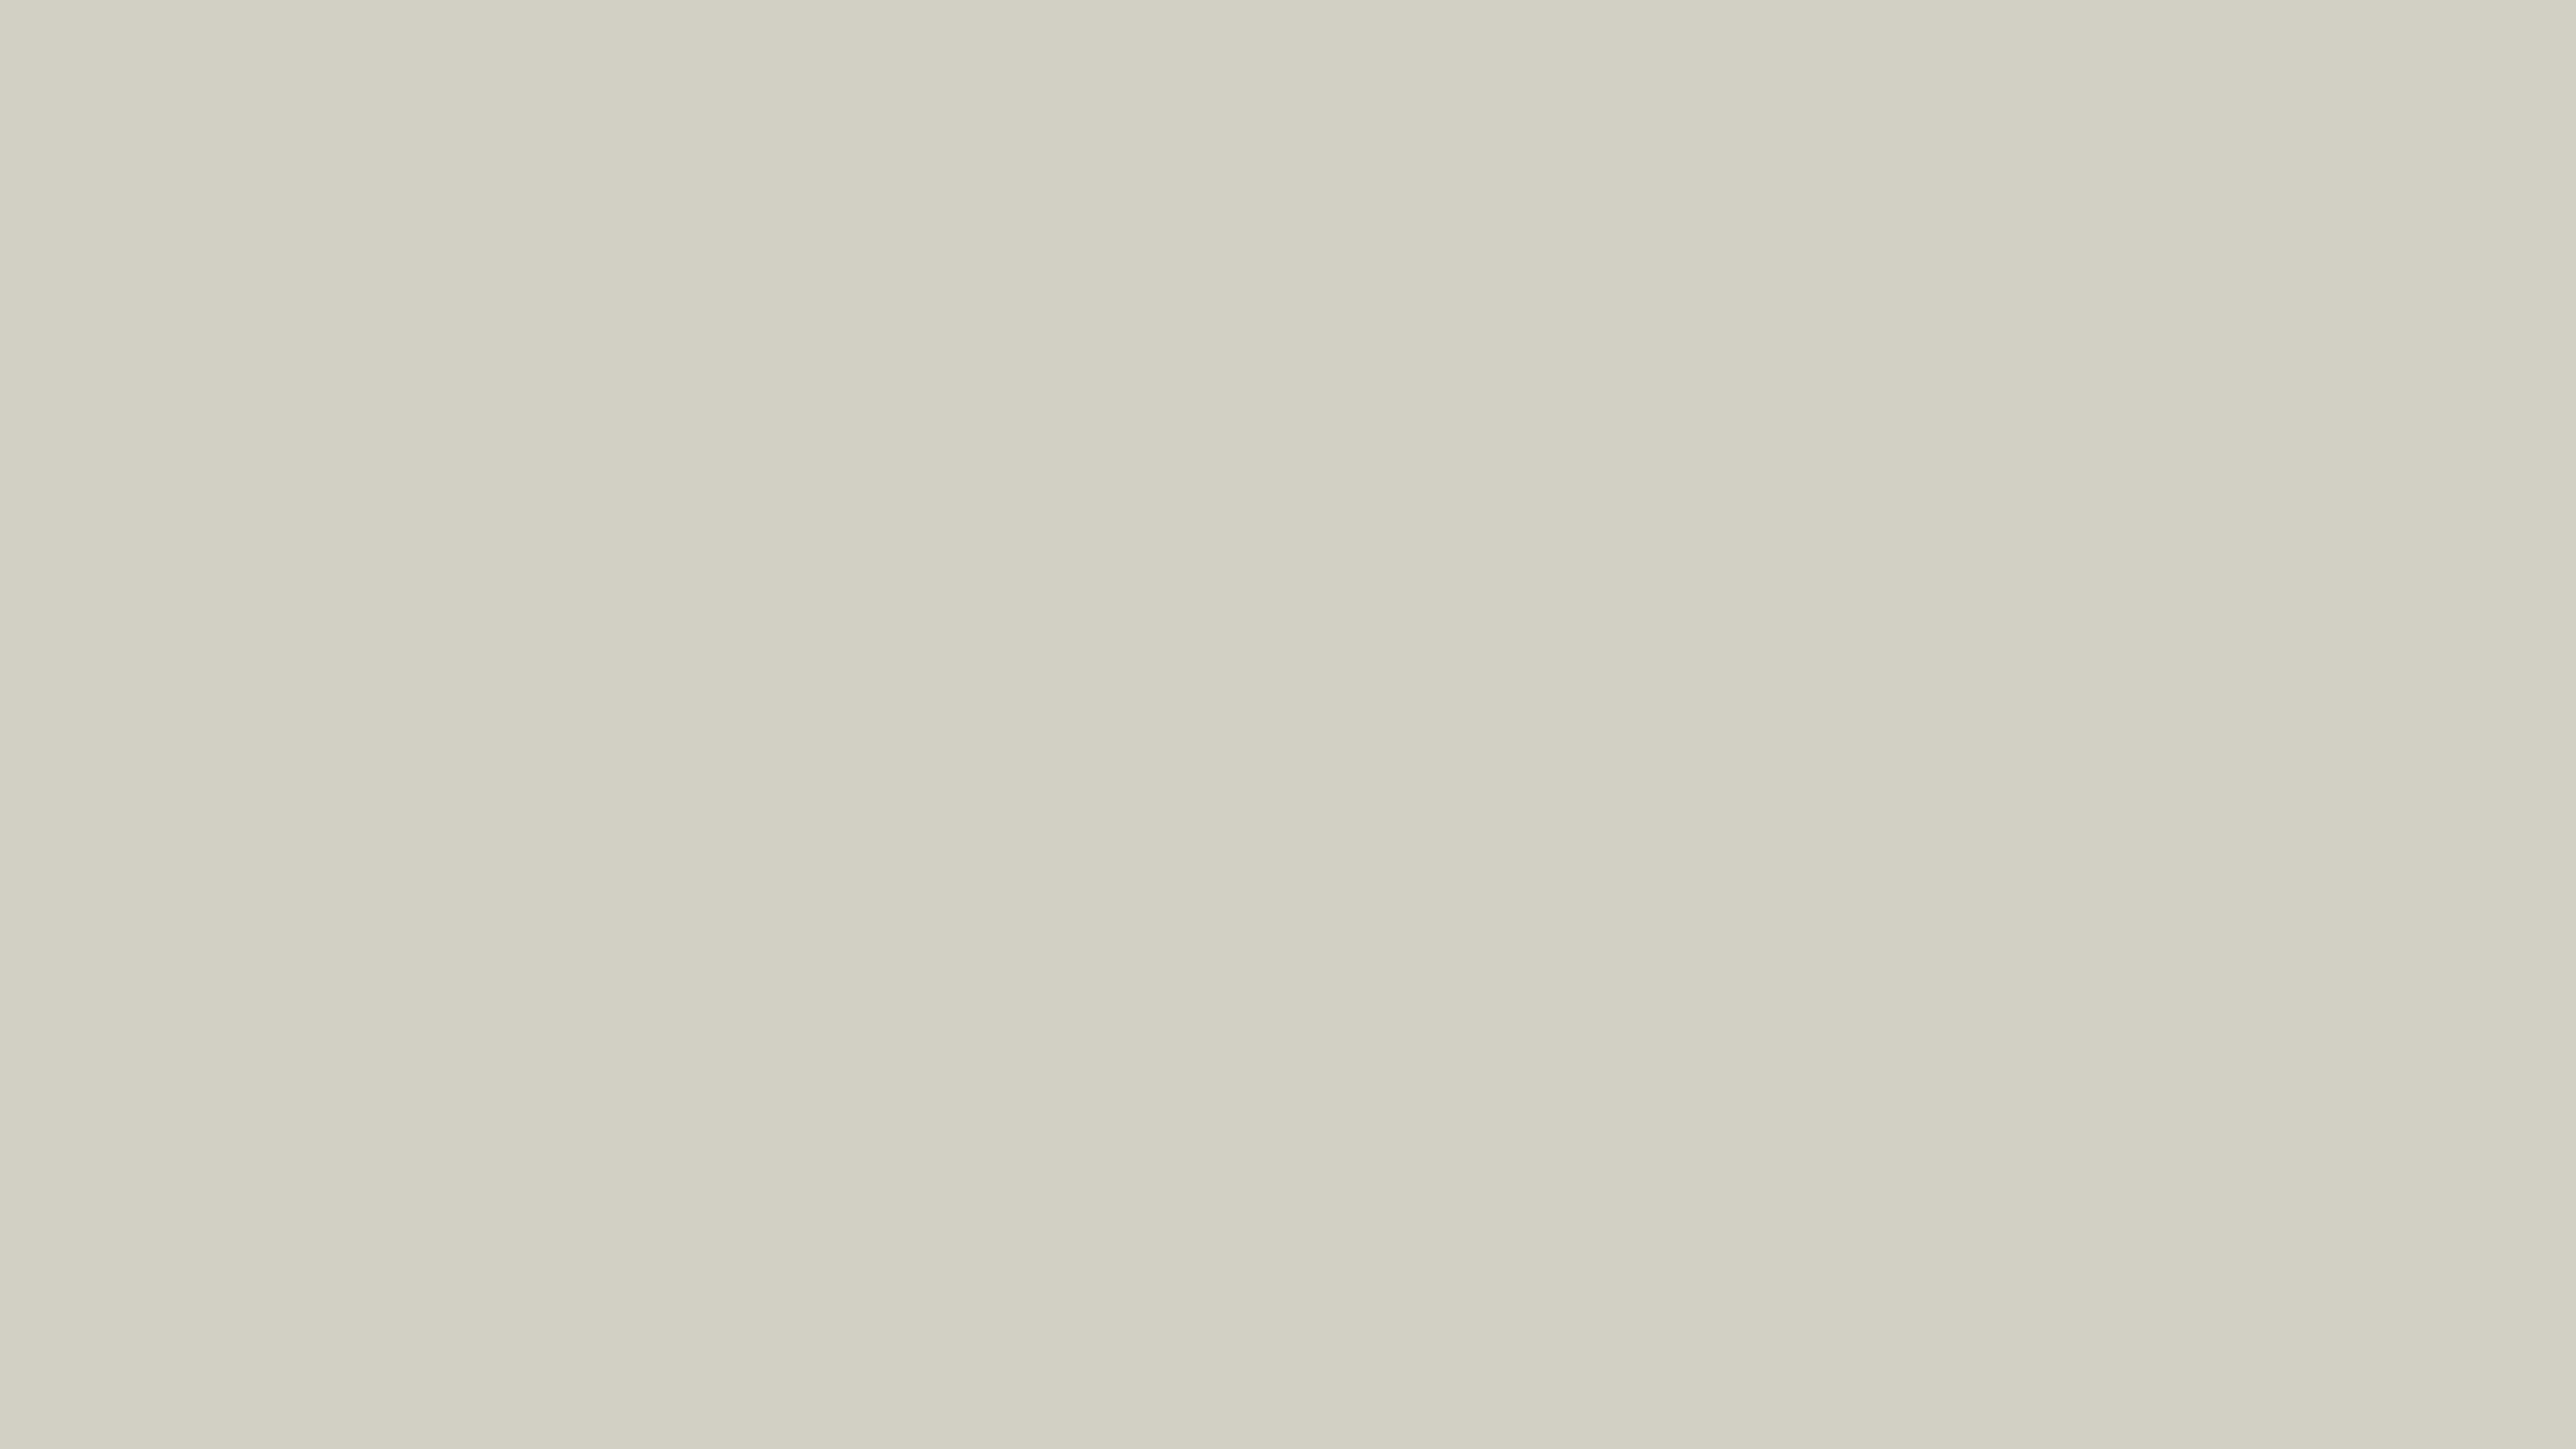 3840x2160 Pastel Gray Solid Color Background